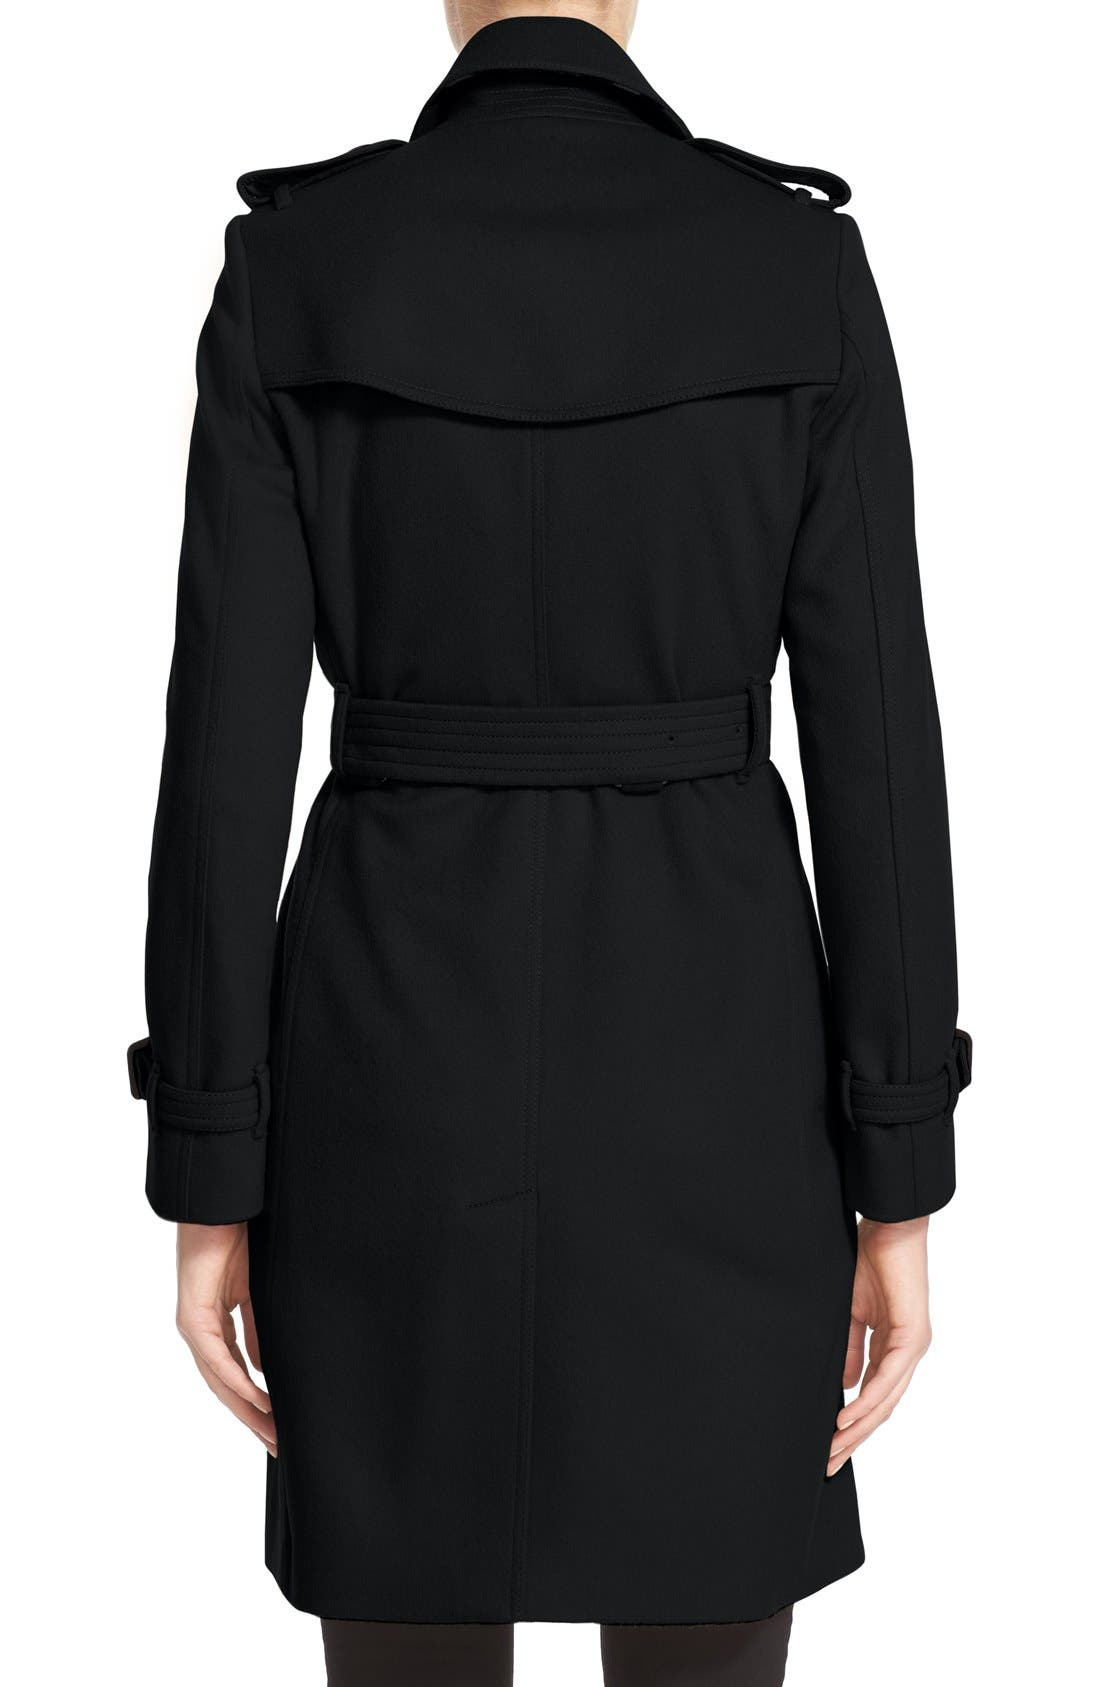 Kensington Double Breasted Wool & Cashmere Trench Coat,                             Alternate thumbnail 2, color,                             001